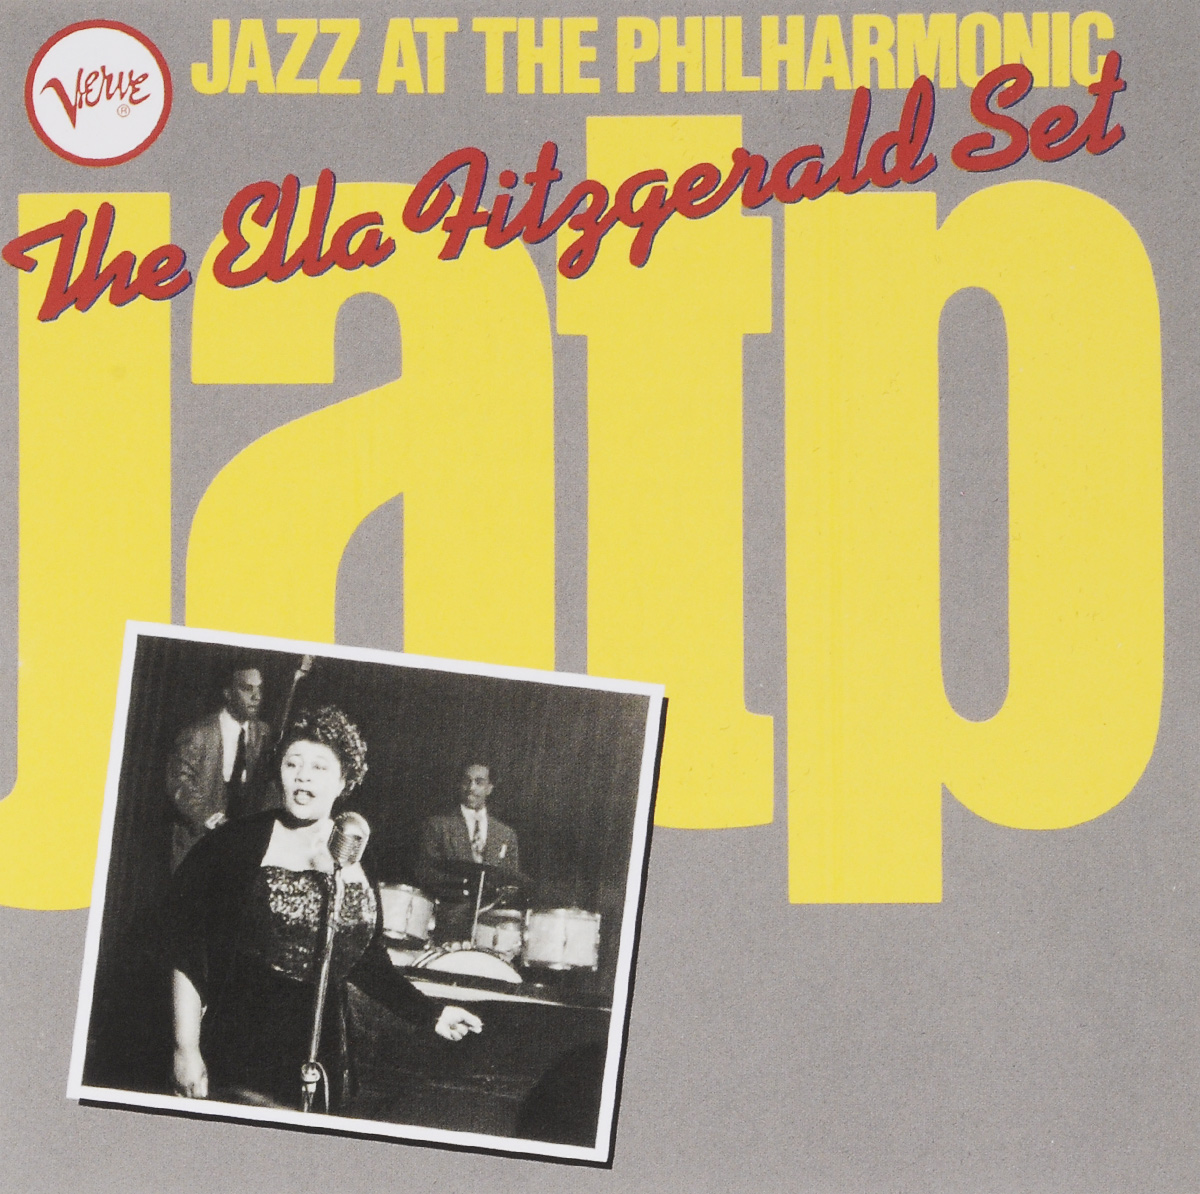 Элла Фитцжеральд Jazz At The Philharmonic. The Ella Fitzgerald Set элла фитцжеральд ella fitzgerald the voice of jazz 10 cd